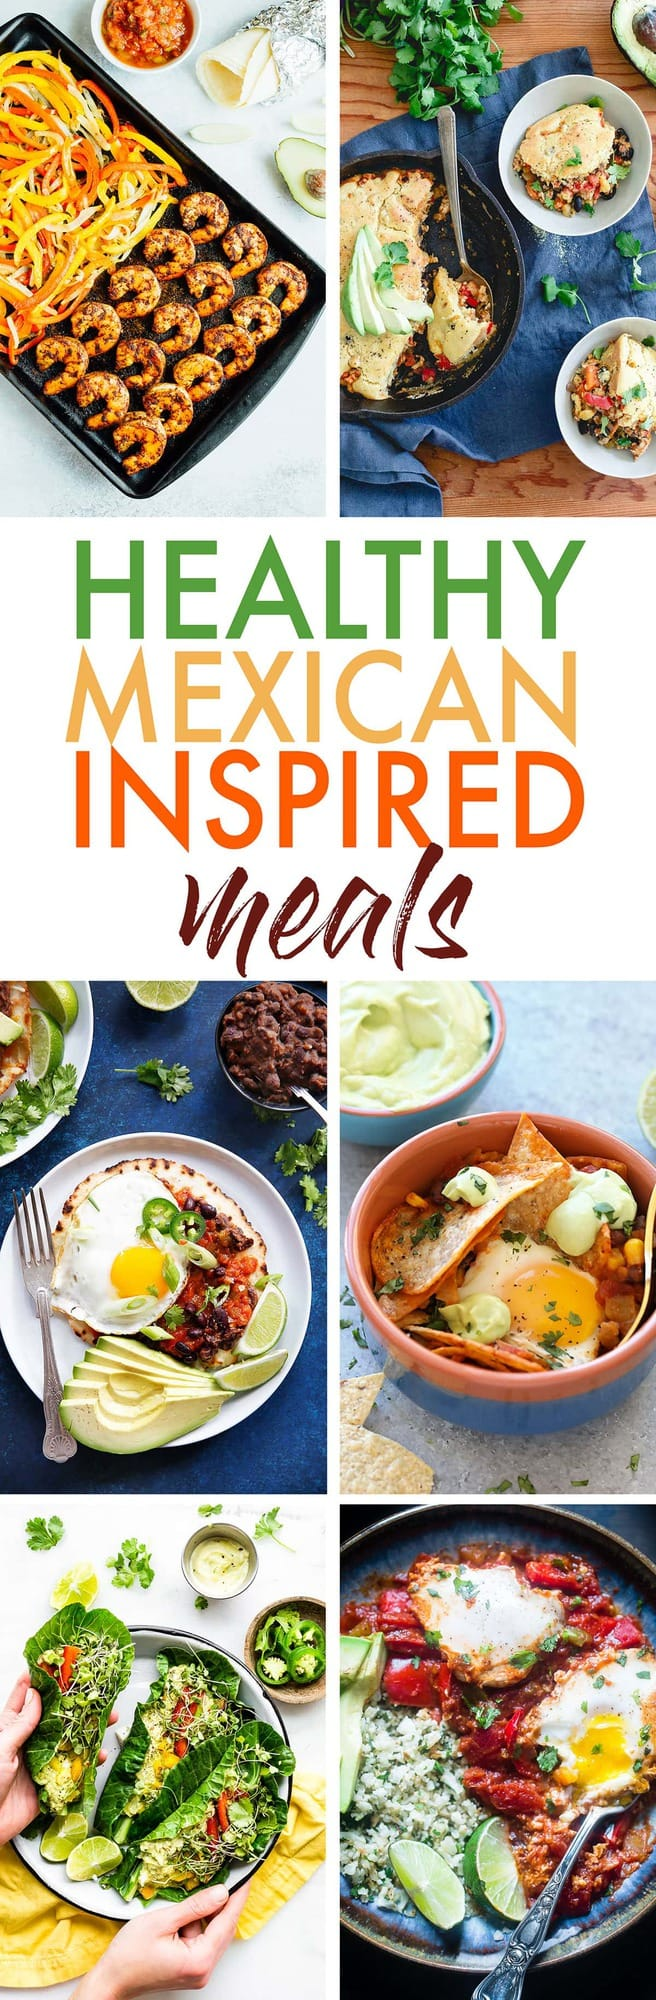 Healthy Mexican Inspired Recipes perfect for Cinco de Mayo!